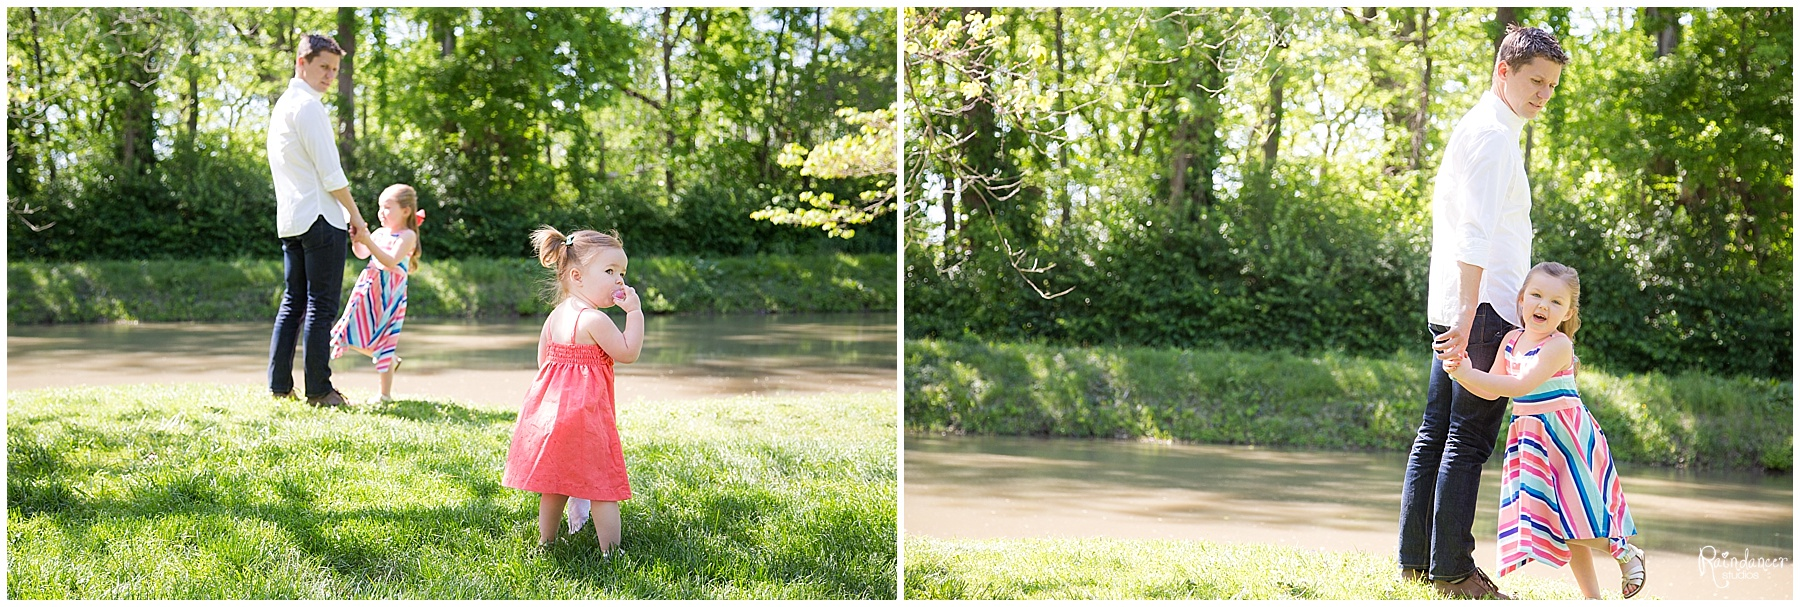 Indianapolis family photographer, Indianapolis family photography, Indy family photographer, Indy family photography, Indy children photographer, Indianapolis children photographer, Indianapolis lifestyle photographer, Indy lifestyle photographer, Indianapolis lifestyle photography, Indy lifestyle photography, Indianapolis Maternity photographer, Indy maternity photographer, Indianapolis family photographer, Indy family photographer, Indy maternity photography, Indianapolis maternity photography